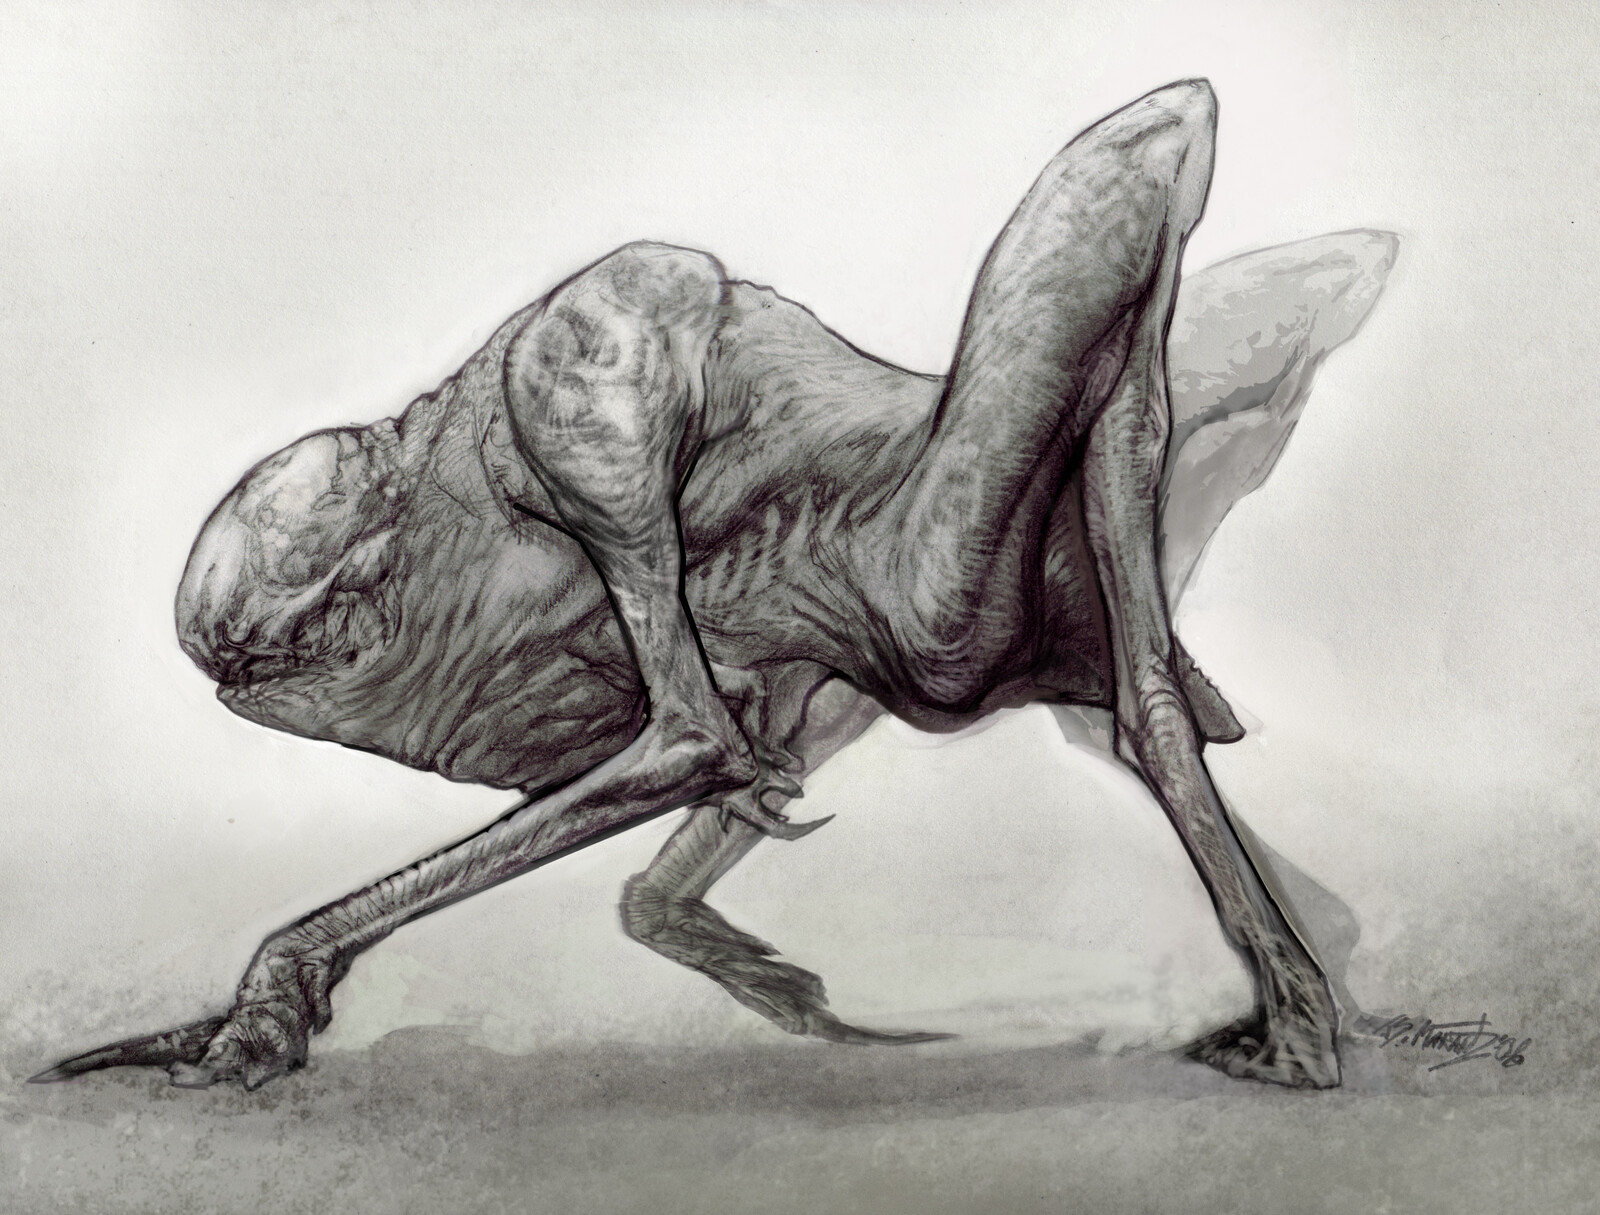 The Burrowers: Creature Designs